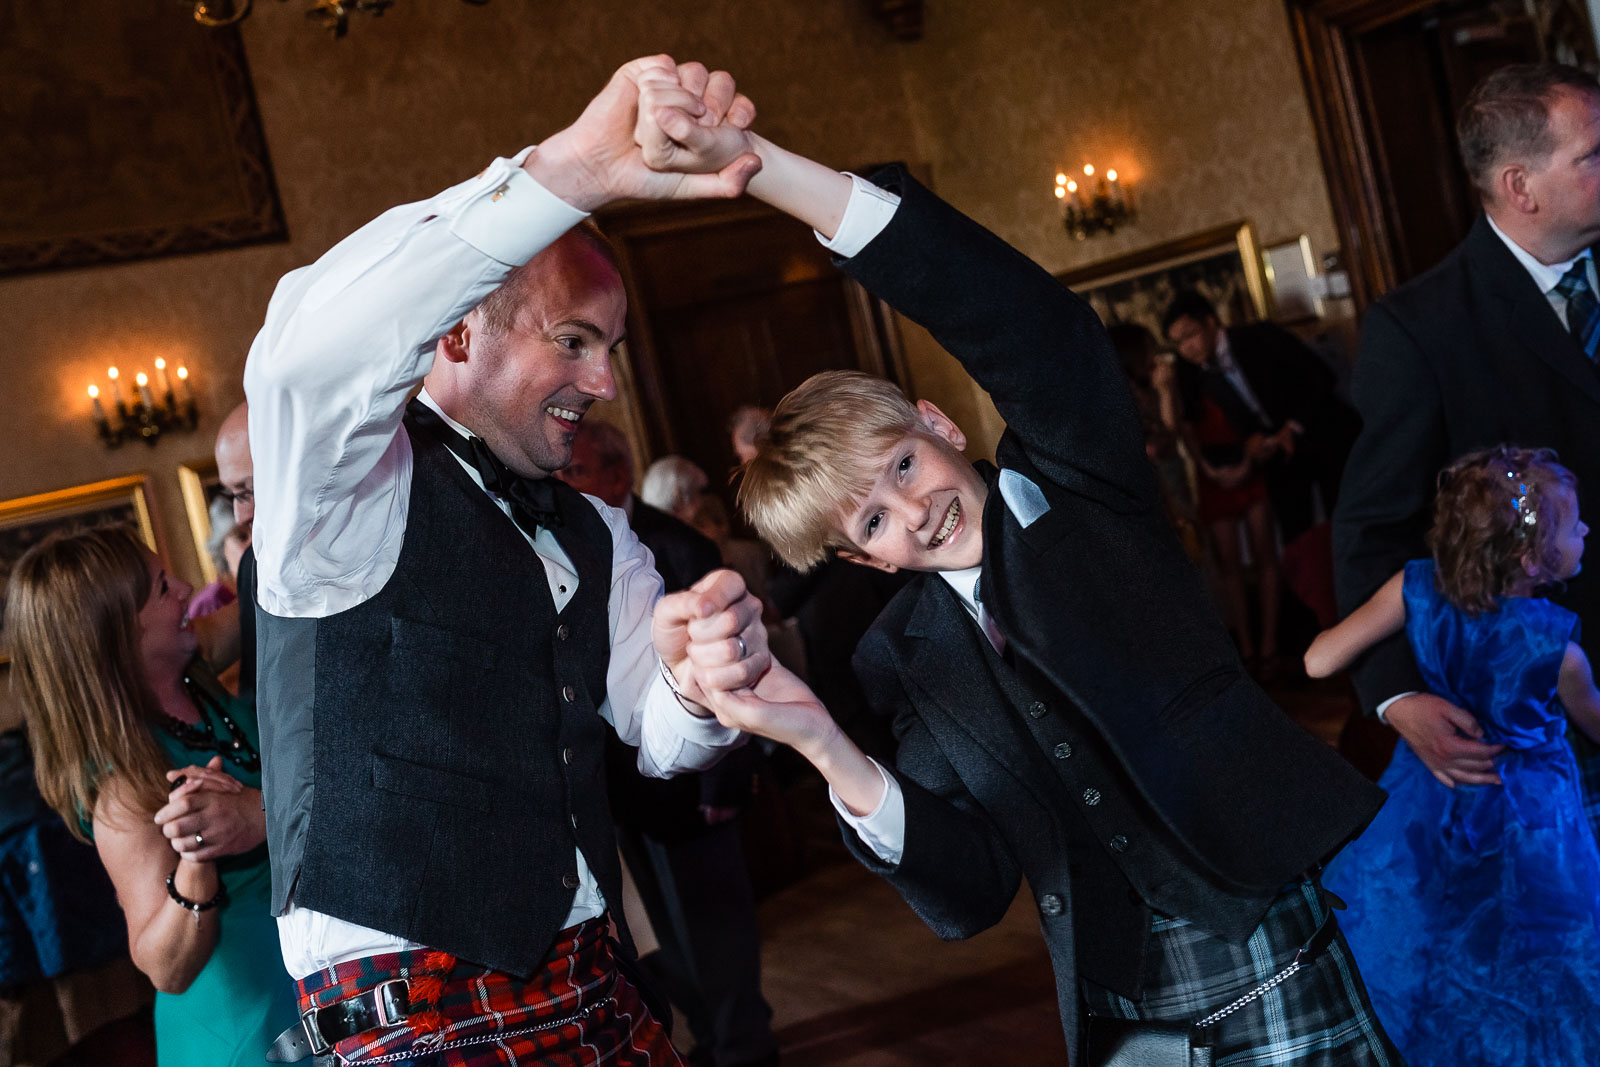 dalhousie_castle_wedding_edinburgh_dearlyphotography (354 of 371).jpg